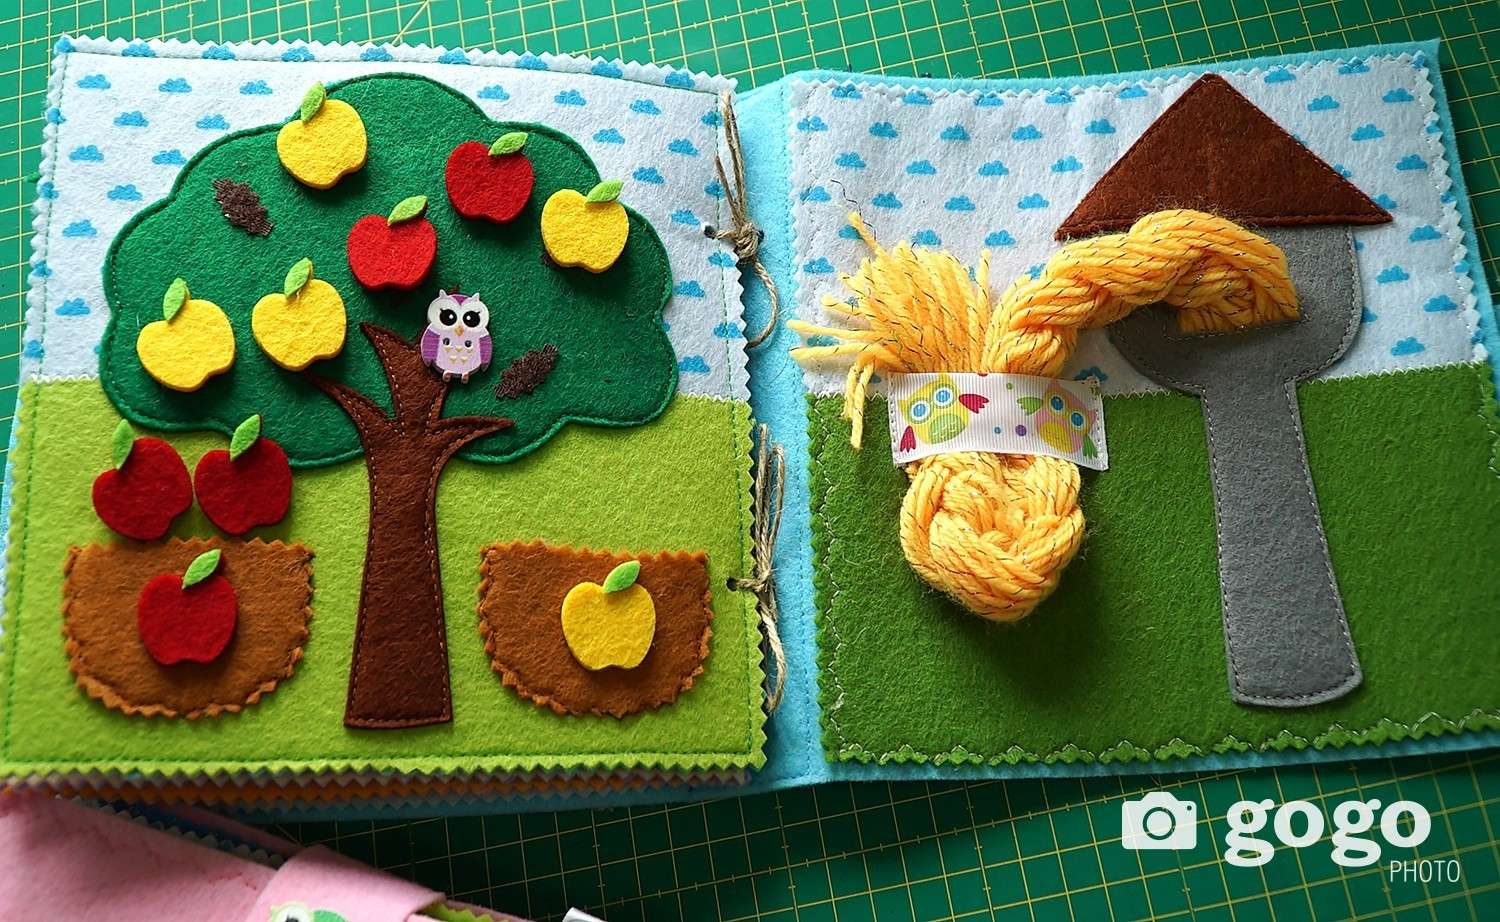 Apple tree helps children learn about subtraction and addition. In the yellow basket there are two apples, and on the tree there are three apples, how many in total etc. In the next page, you see Rapunzel that will help children braiding.